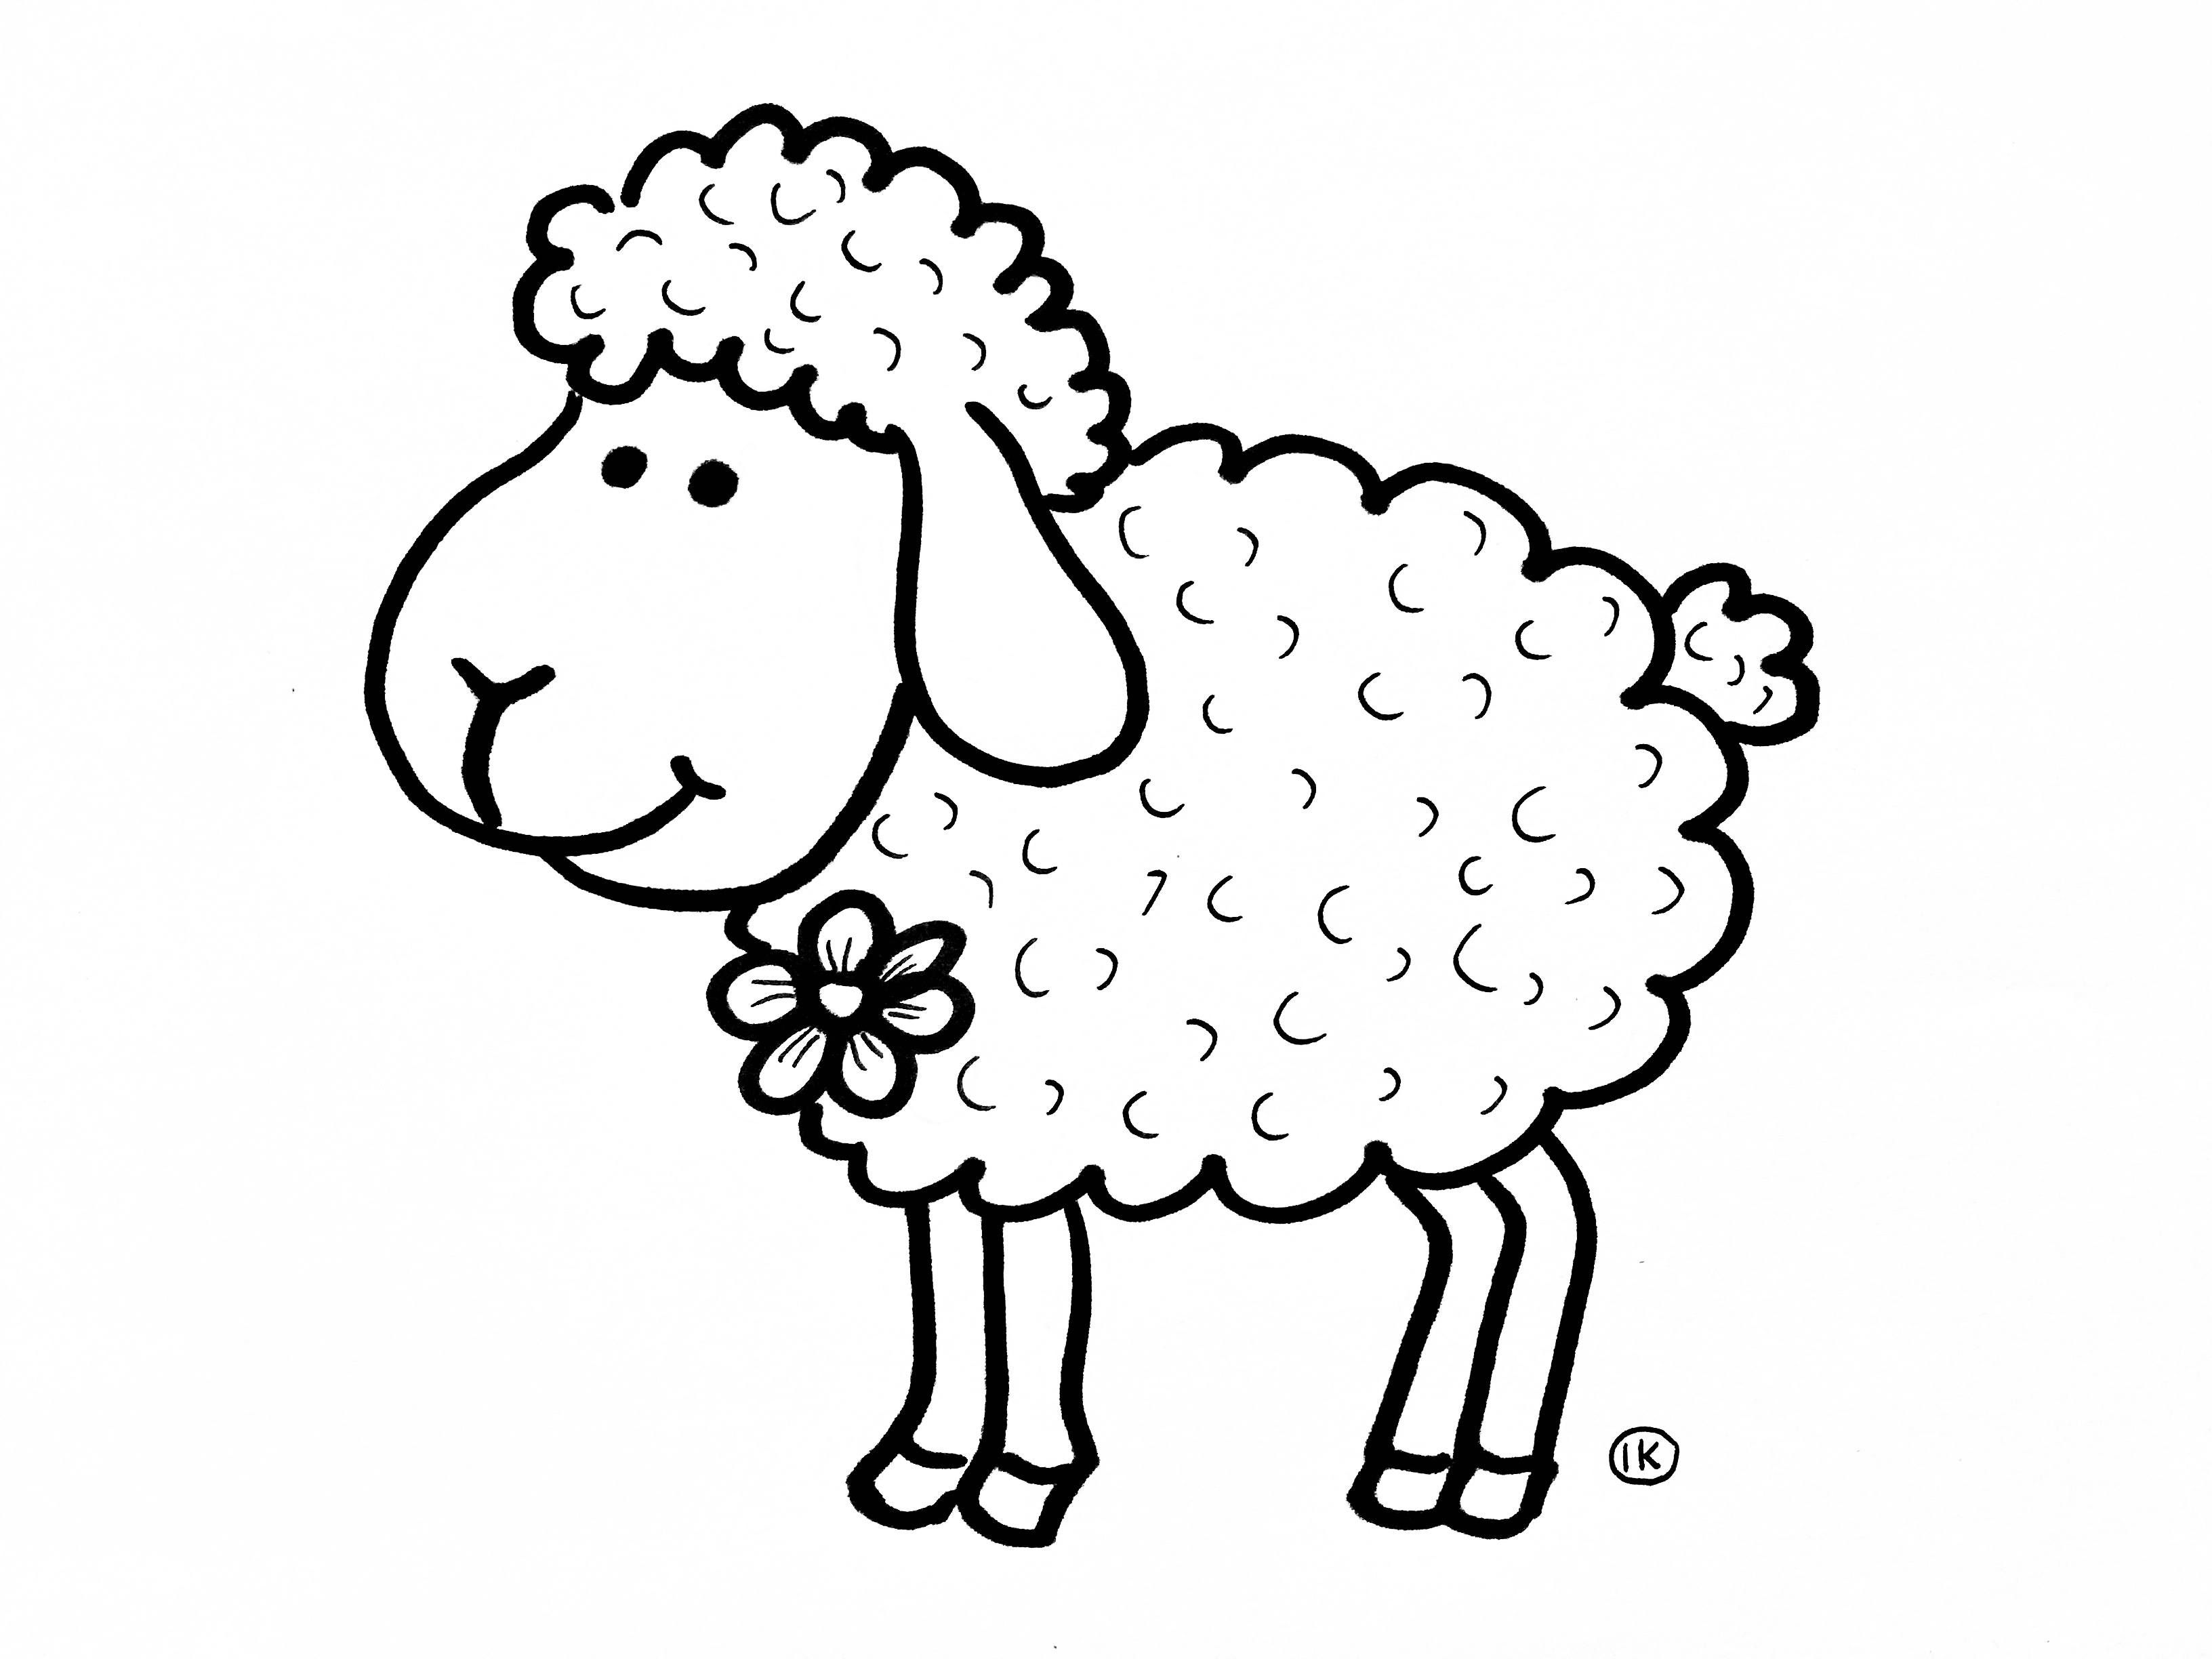 Coloring Sheep Spring Tinkering Creative Coloringpages Coloringpage De Knutseljuf Ede Book Crafts Sheep And Lamb Coloring Pages